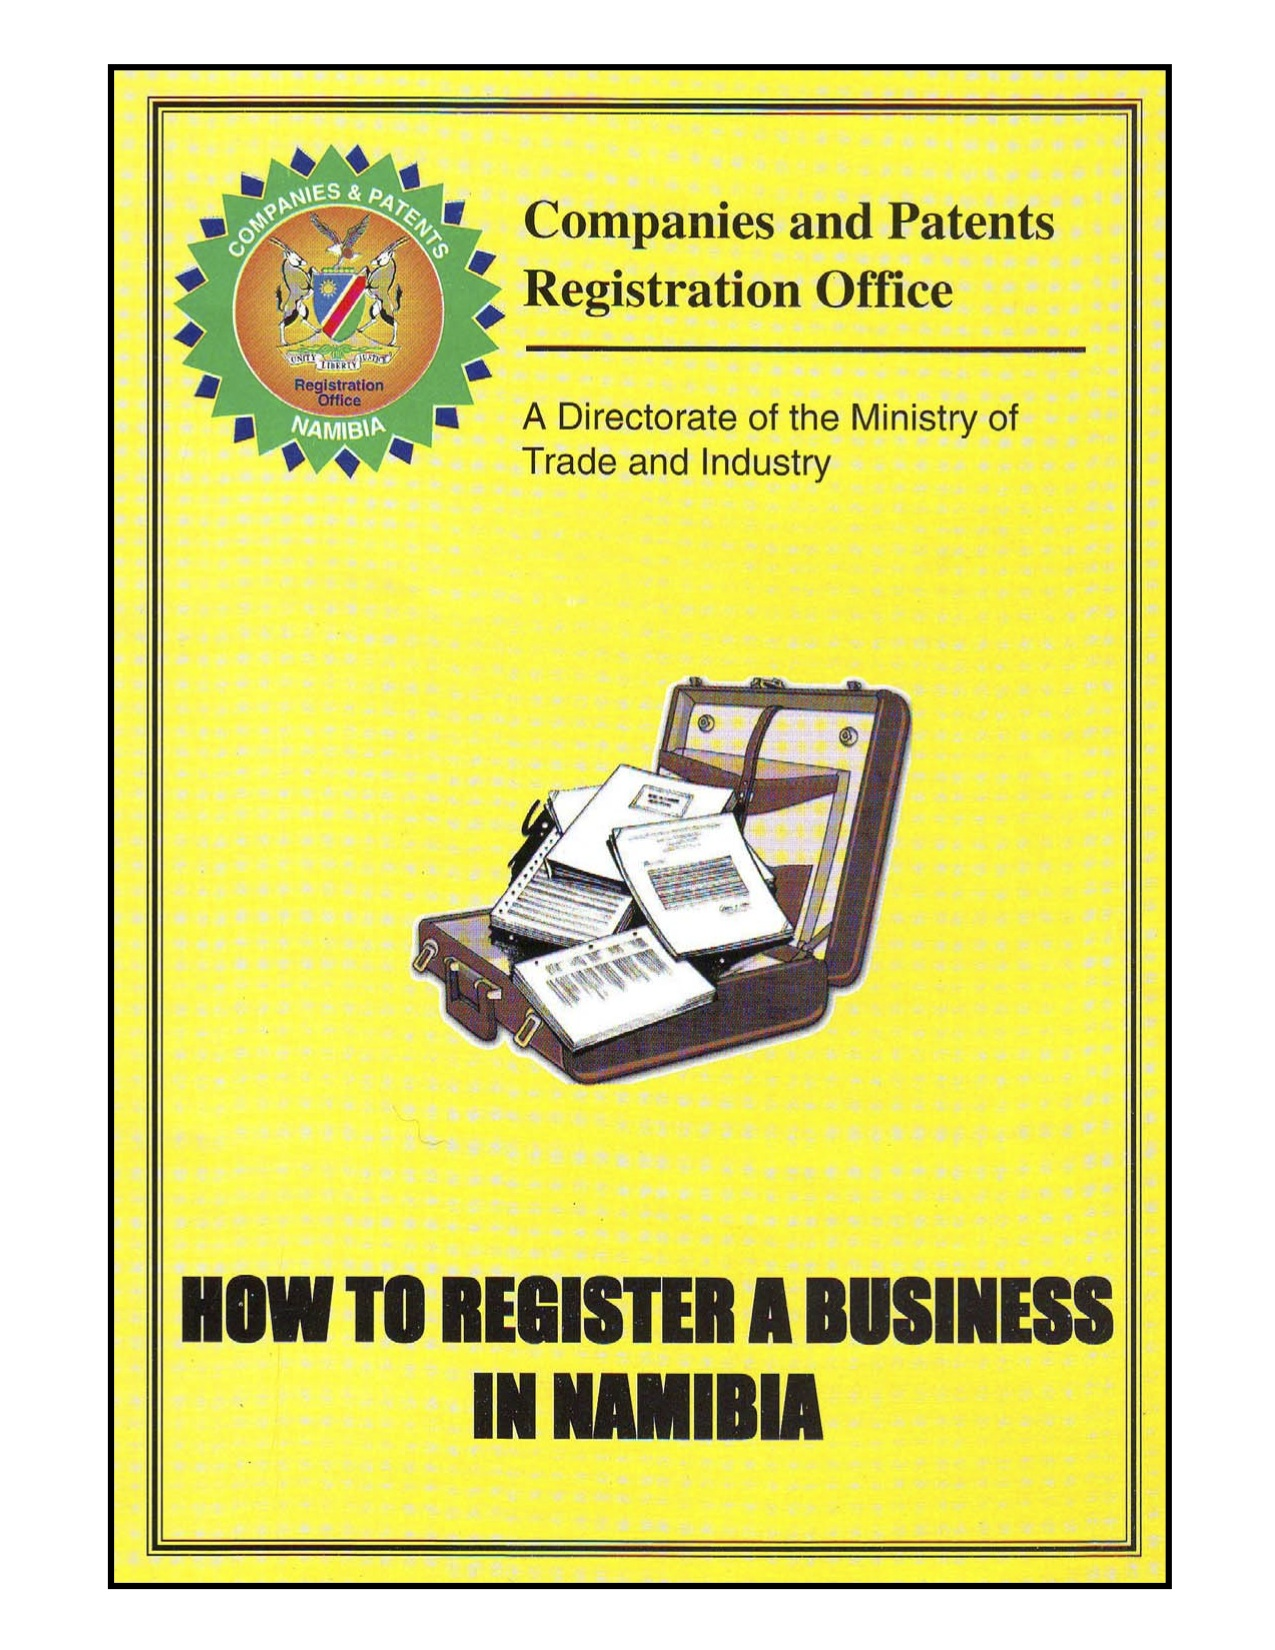 how_to_register_a_business_in_namibia_cover.jpg